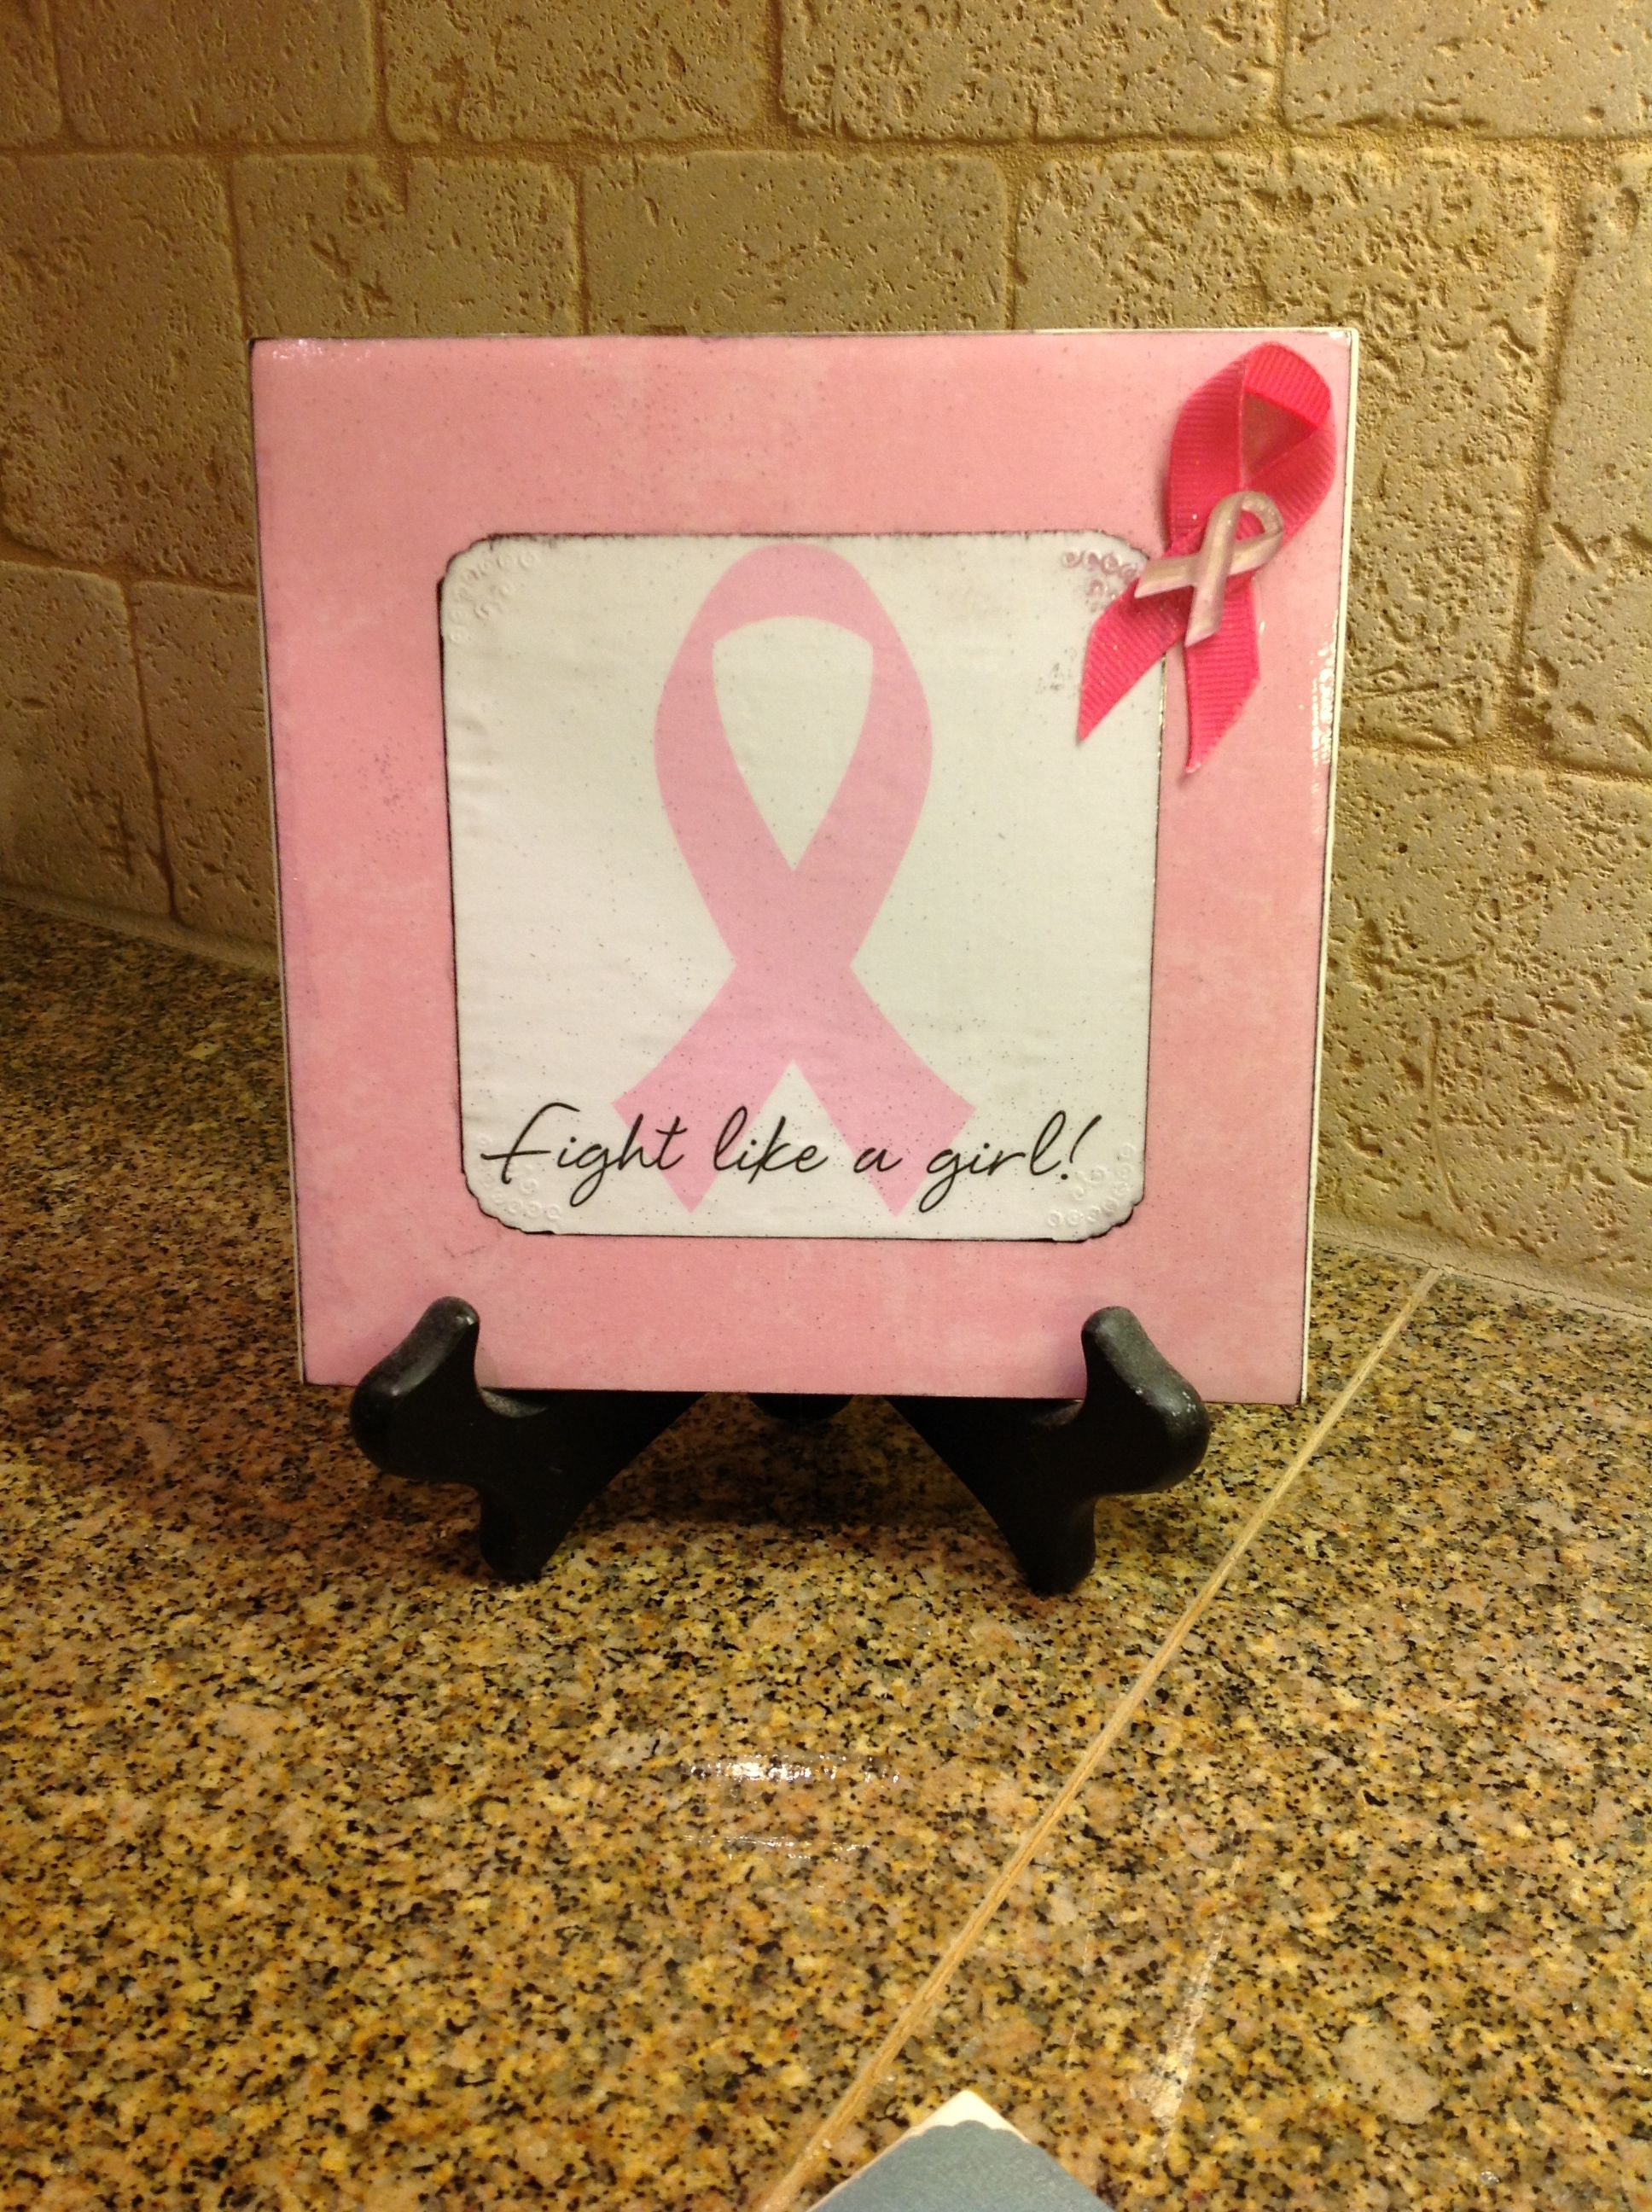 6x6 ceramic tile cancer ribbon theme heavy pink card stock with 6x6 ceramic tile cancer ribbon theme heavy pink card stock with white paper with dailygadgetfo Gallery